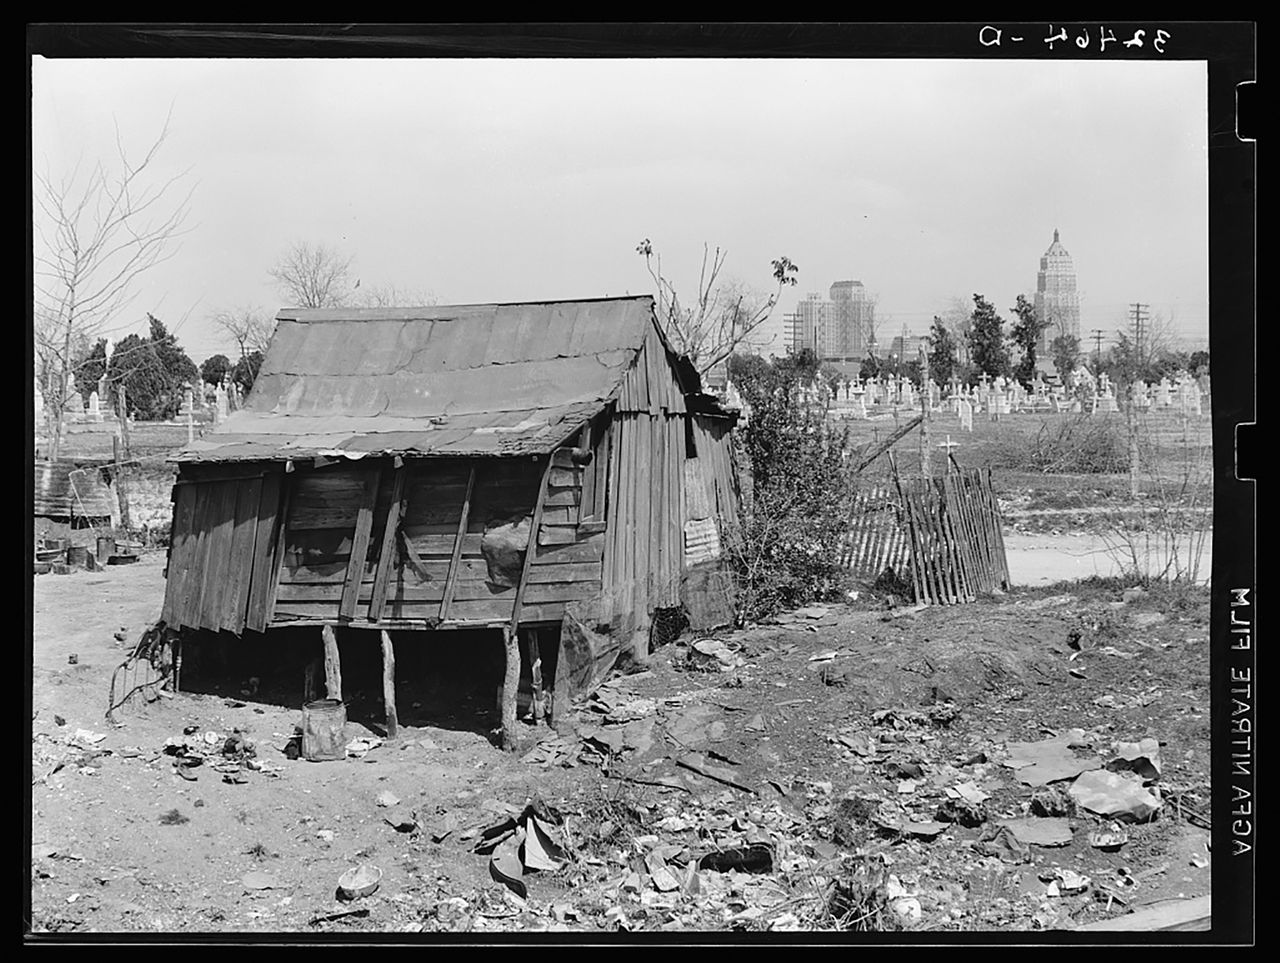 The type of the simple wooden homes Latinos on the west side of the city lived in. Many were instantly destroyed when the waters came.